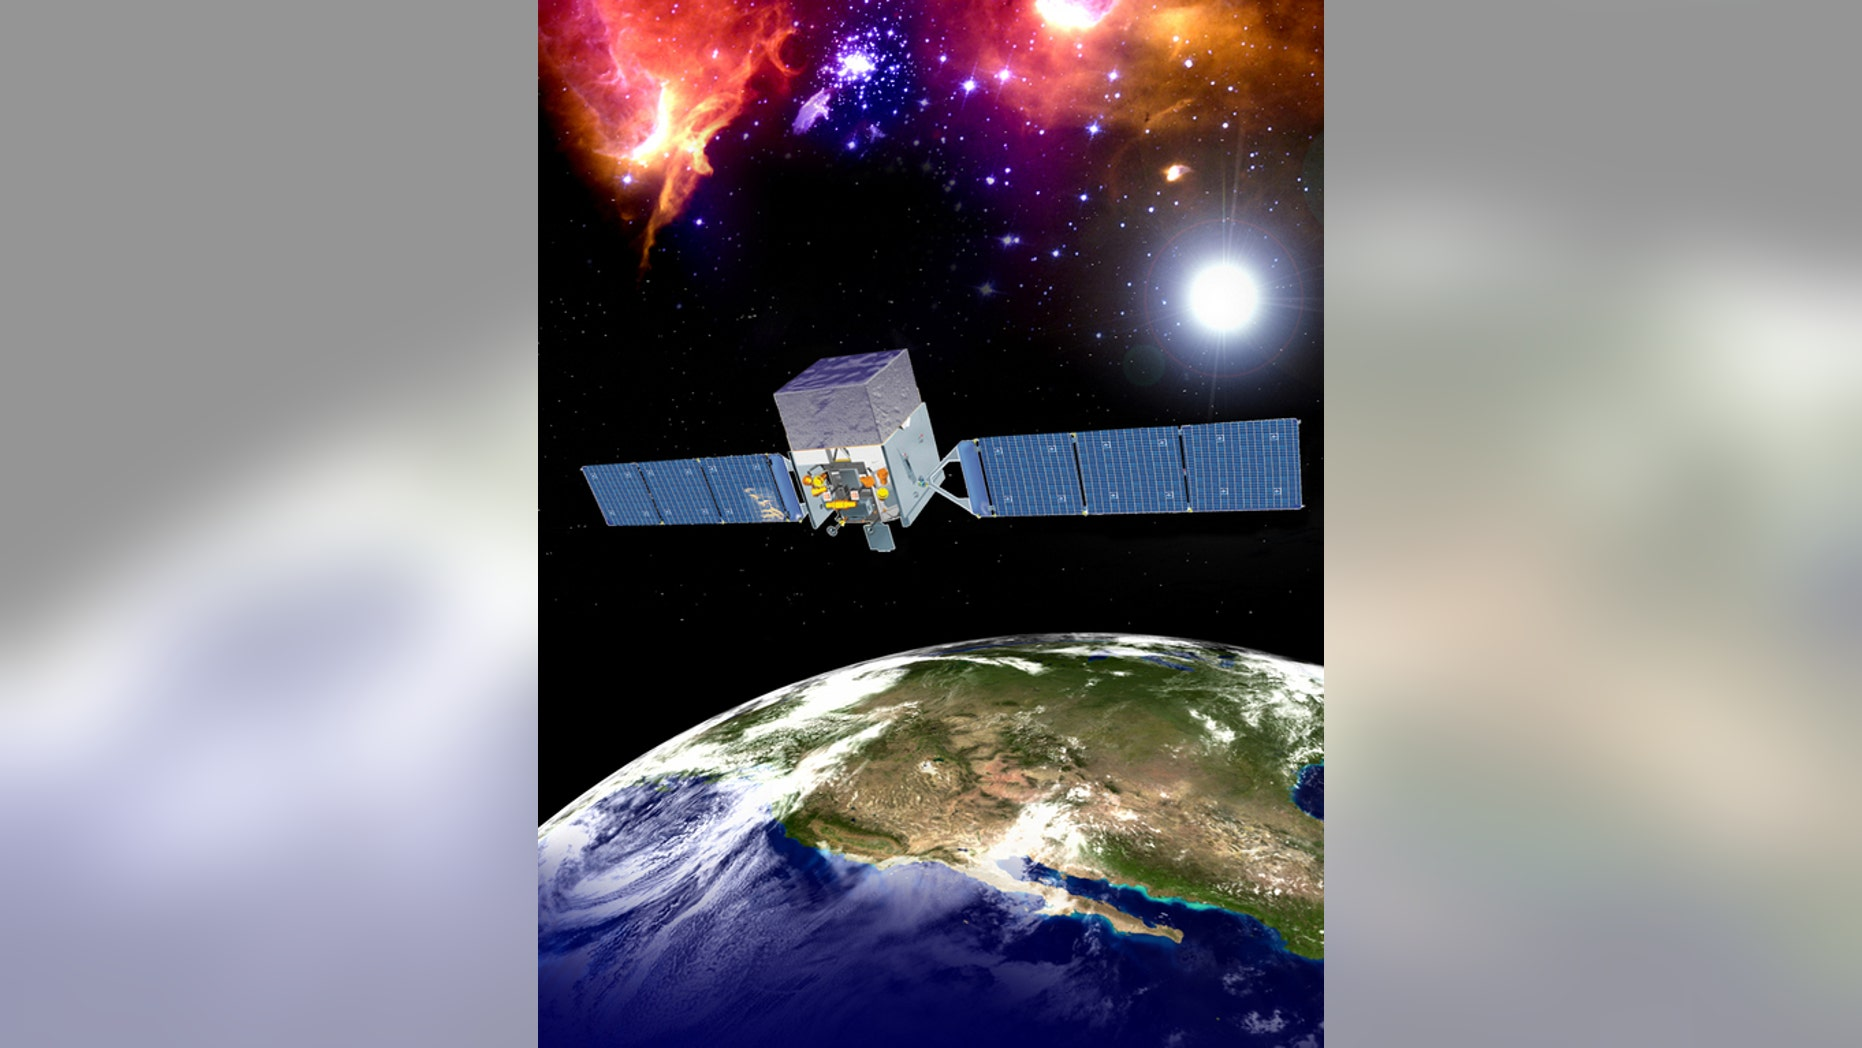 An artist's depiction of the Fermi Gamma-ray Space Telescope (FGST) in orbit.